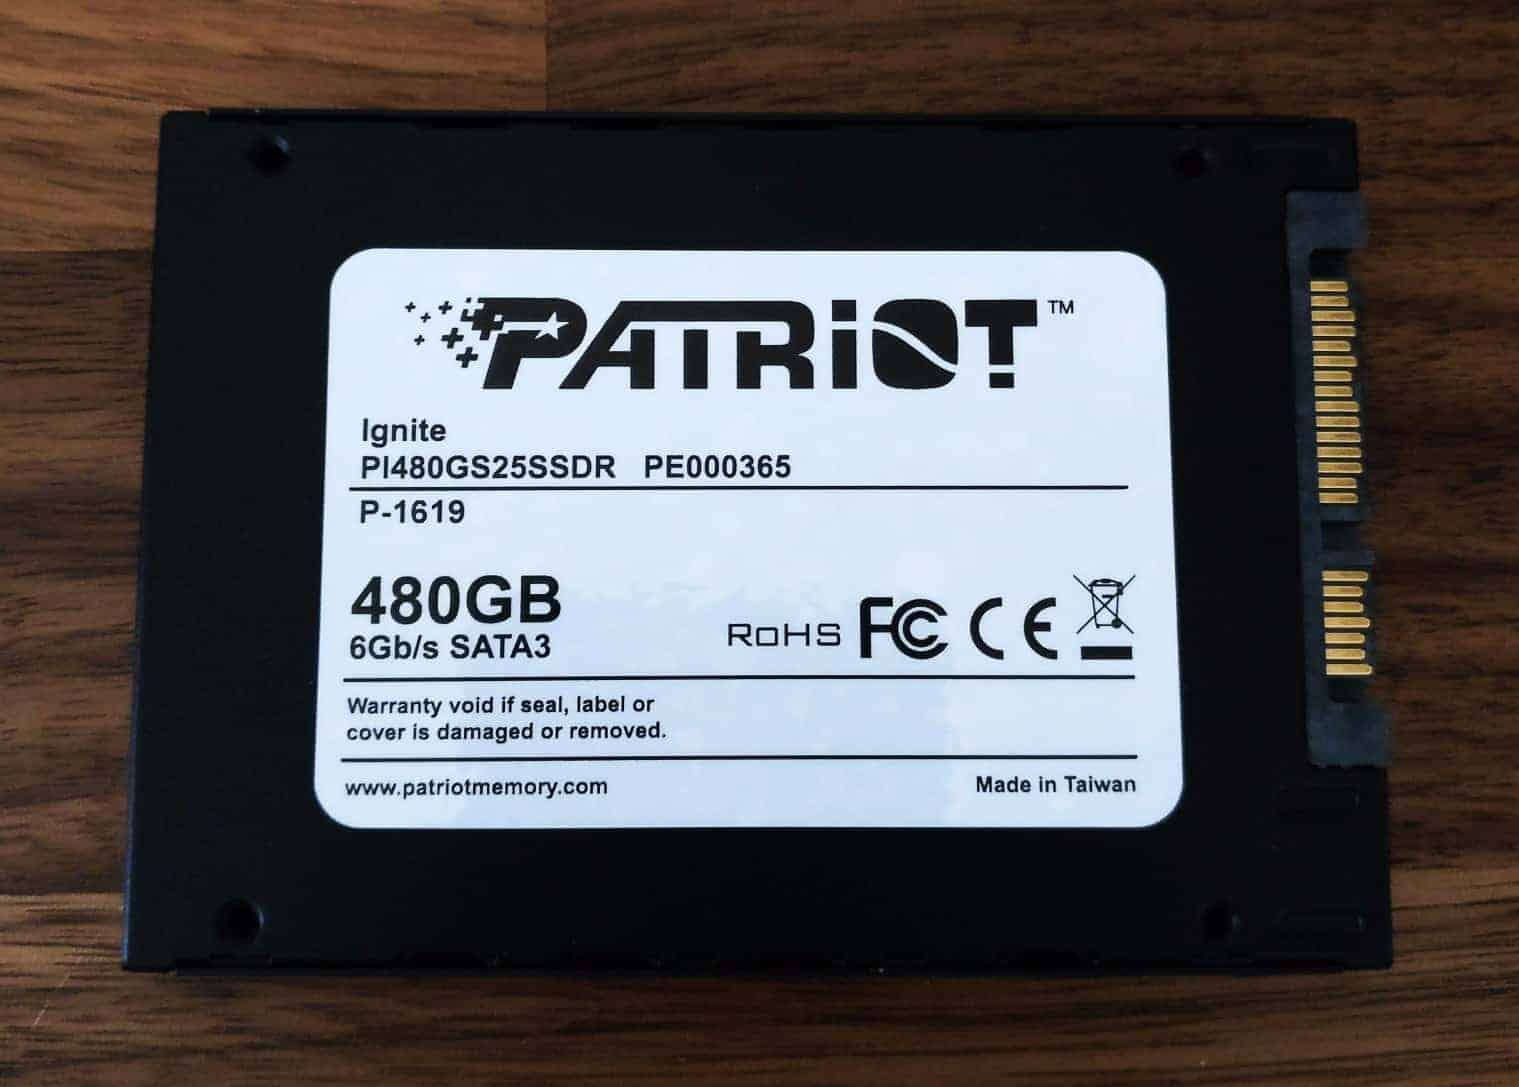 patriot-ignite-photos-7 Patriot Ignite 480GB SSD Review